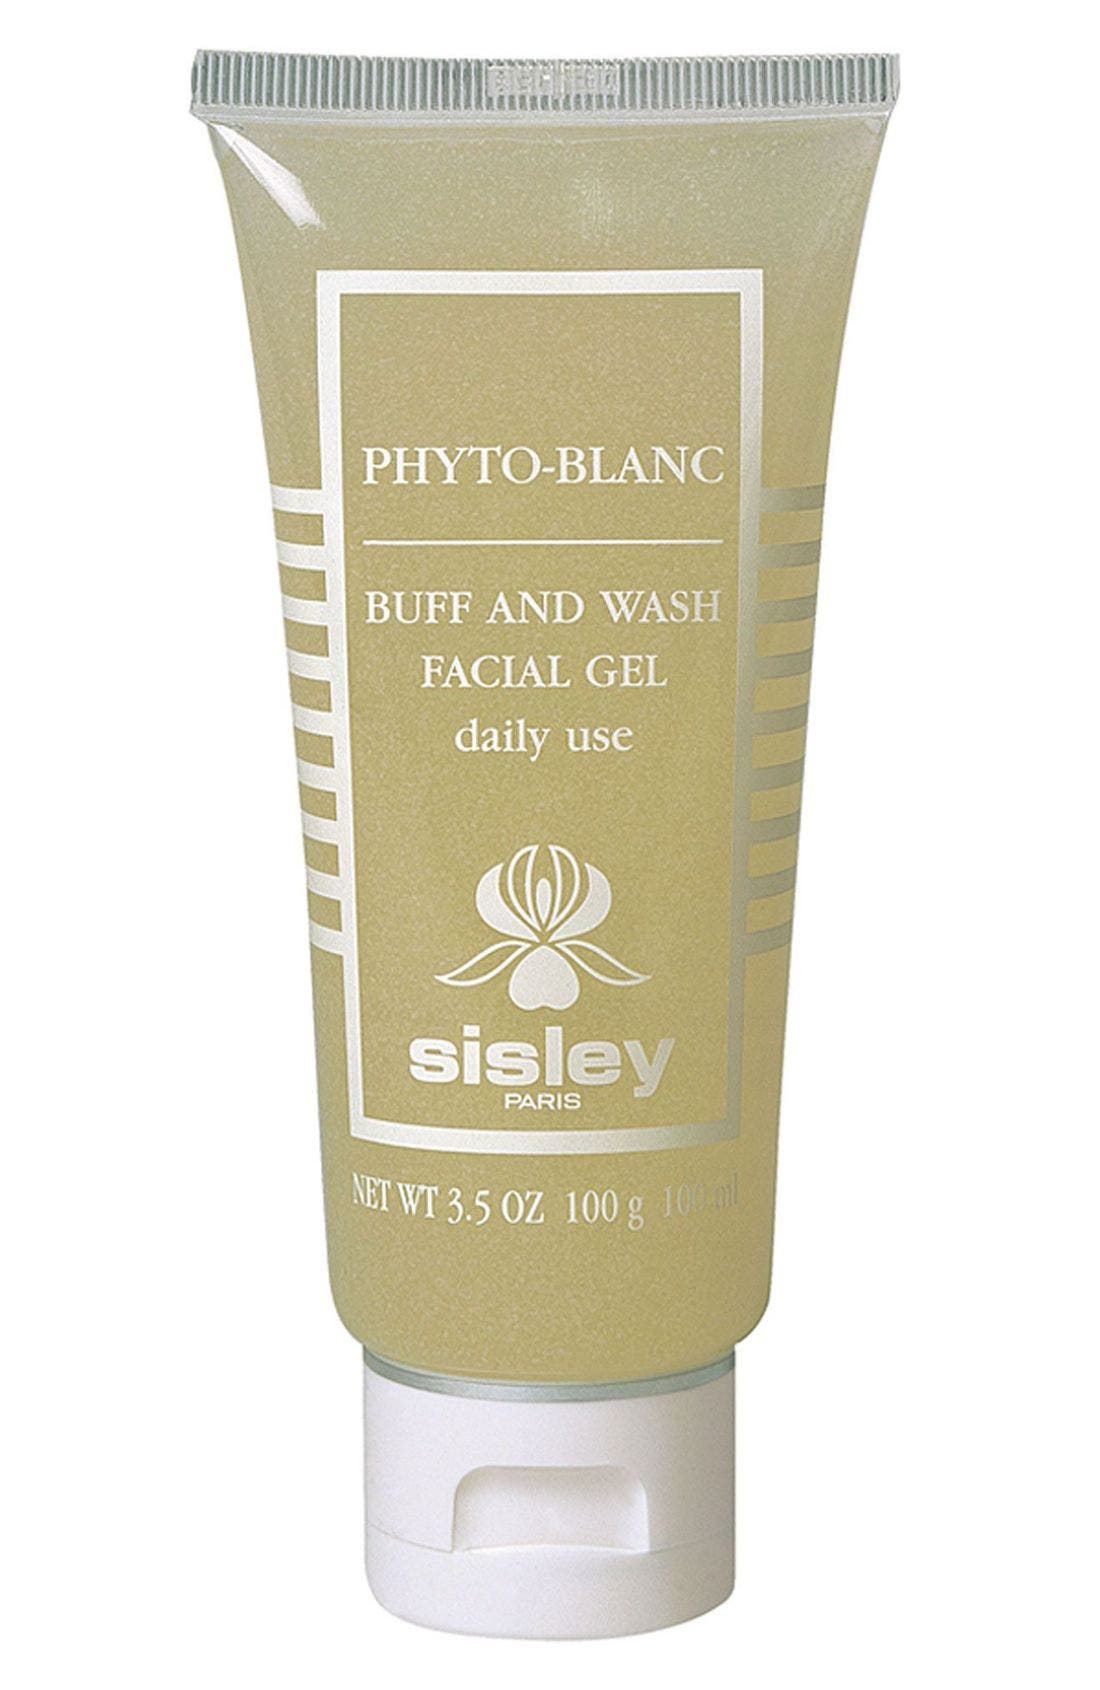 Sisley Paris 'Phyto-Blanc' Buff and Wash Facial Gel